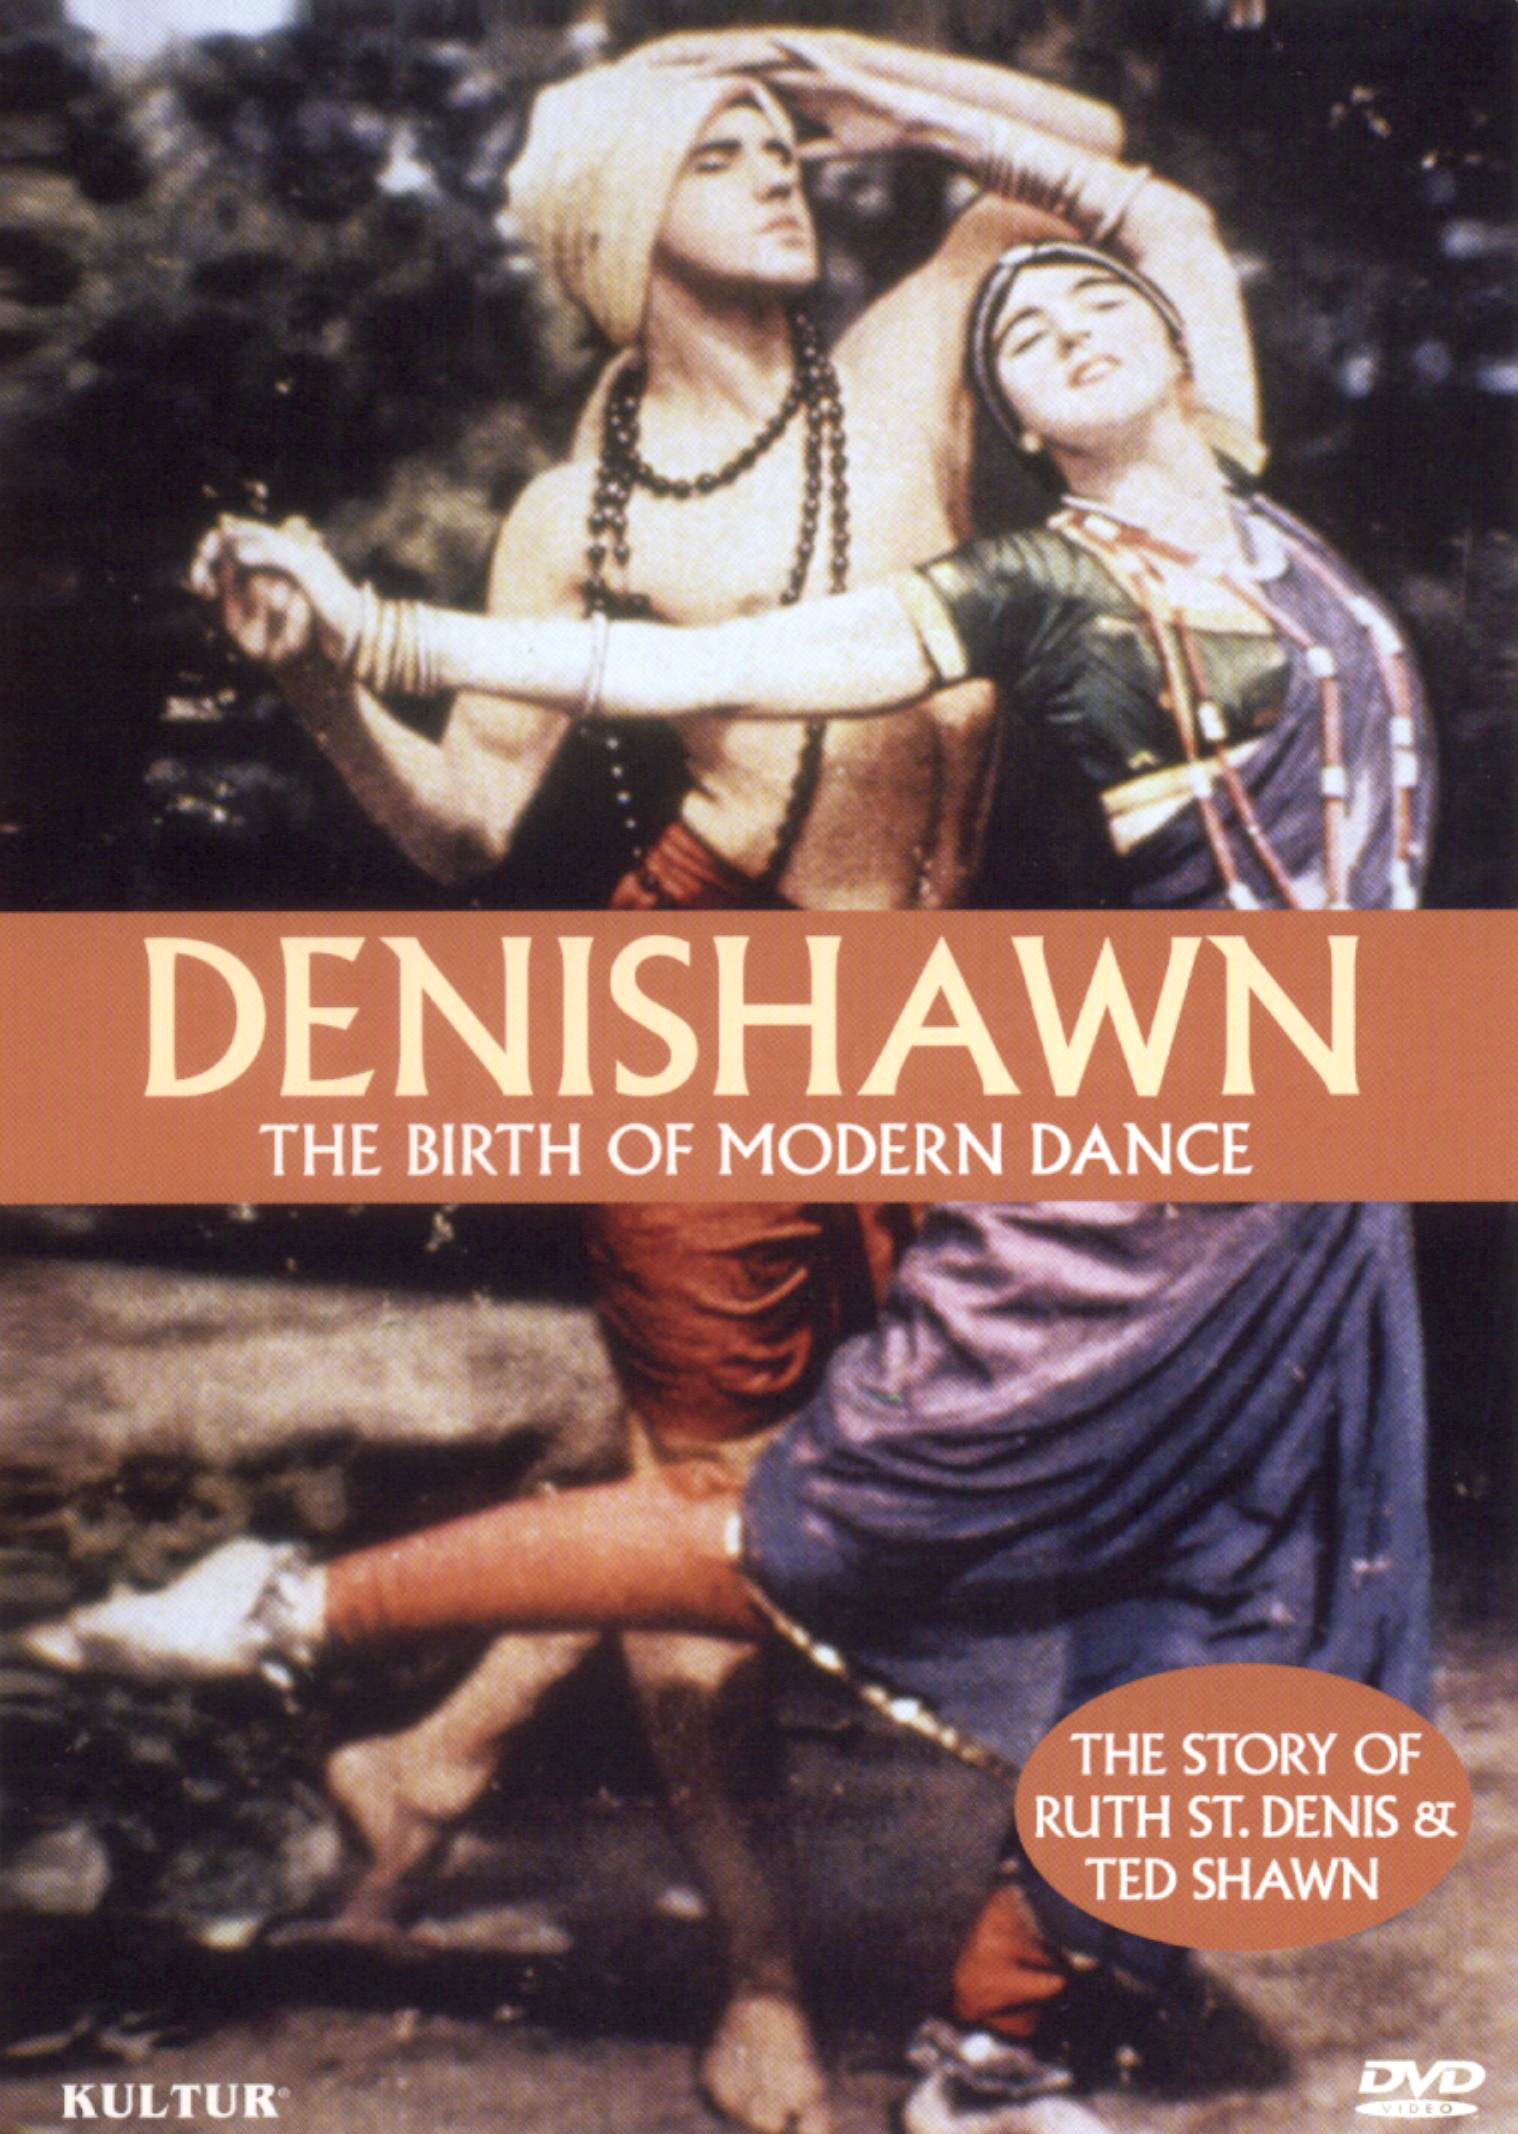 Denishawn: The Birth of Modern Dance